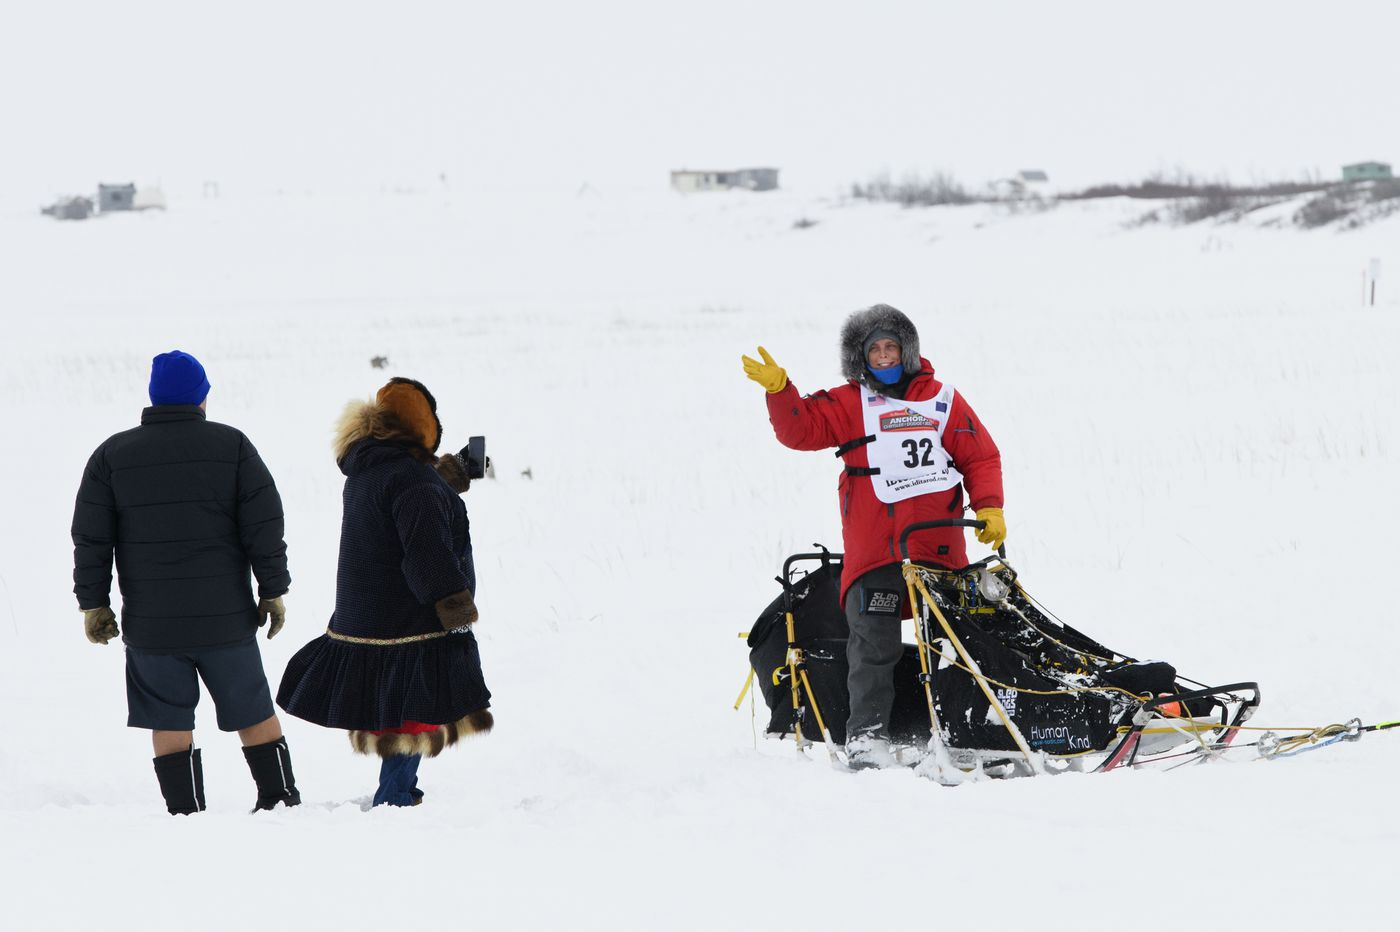 Mille Porsild waves to people as she approaches Nome. Porsild was the first Iditarod Trail Sled Dog Race rookie to finish. She arrived in 15th place on March 18, 2020. (Marc Lester / ADN)